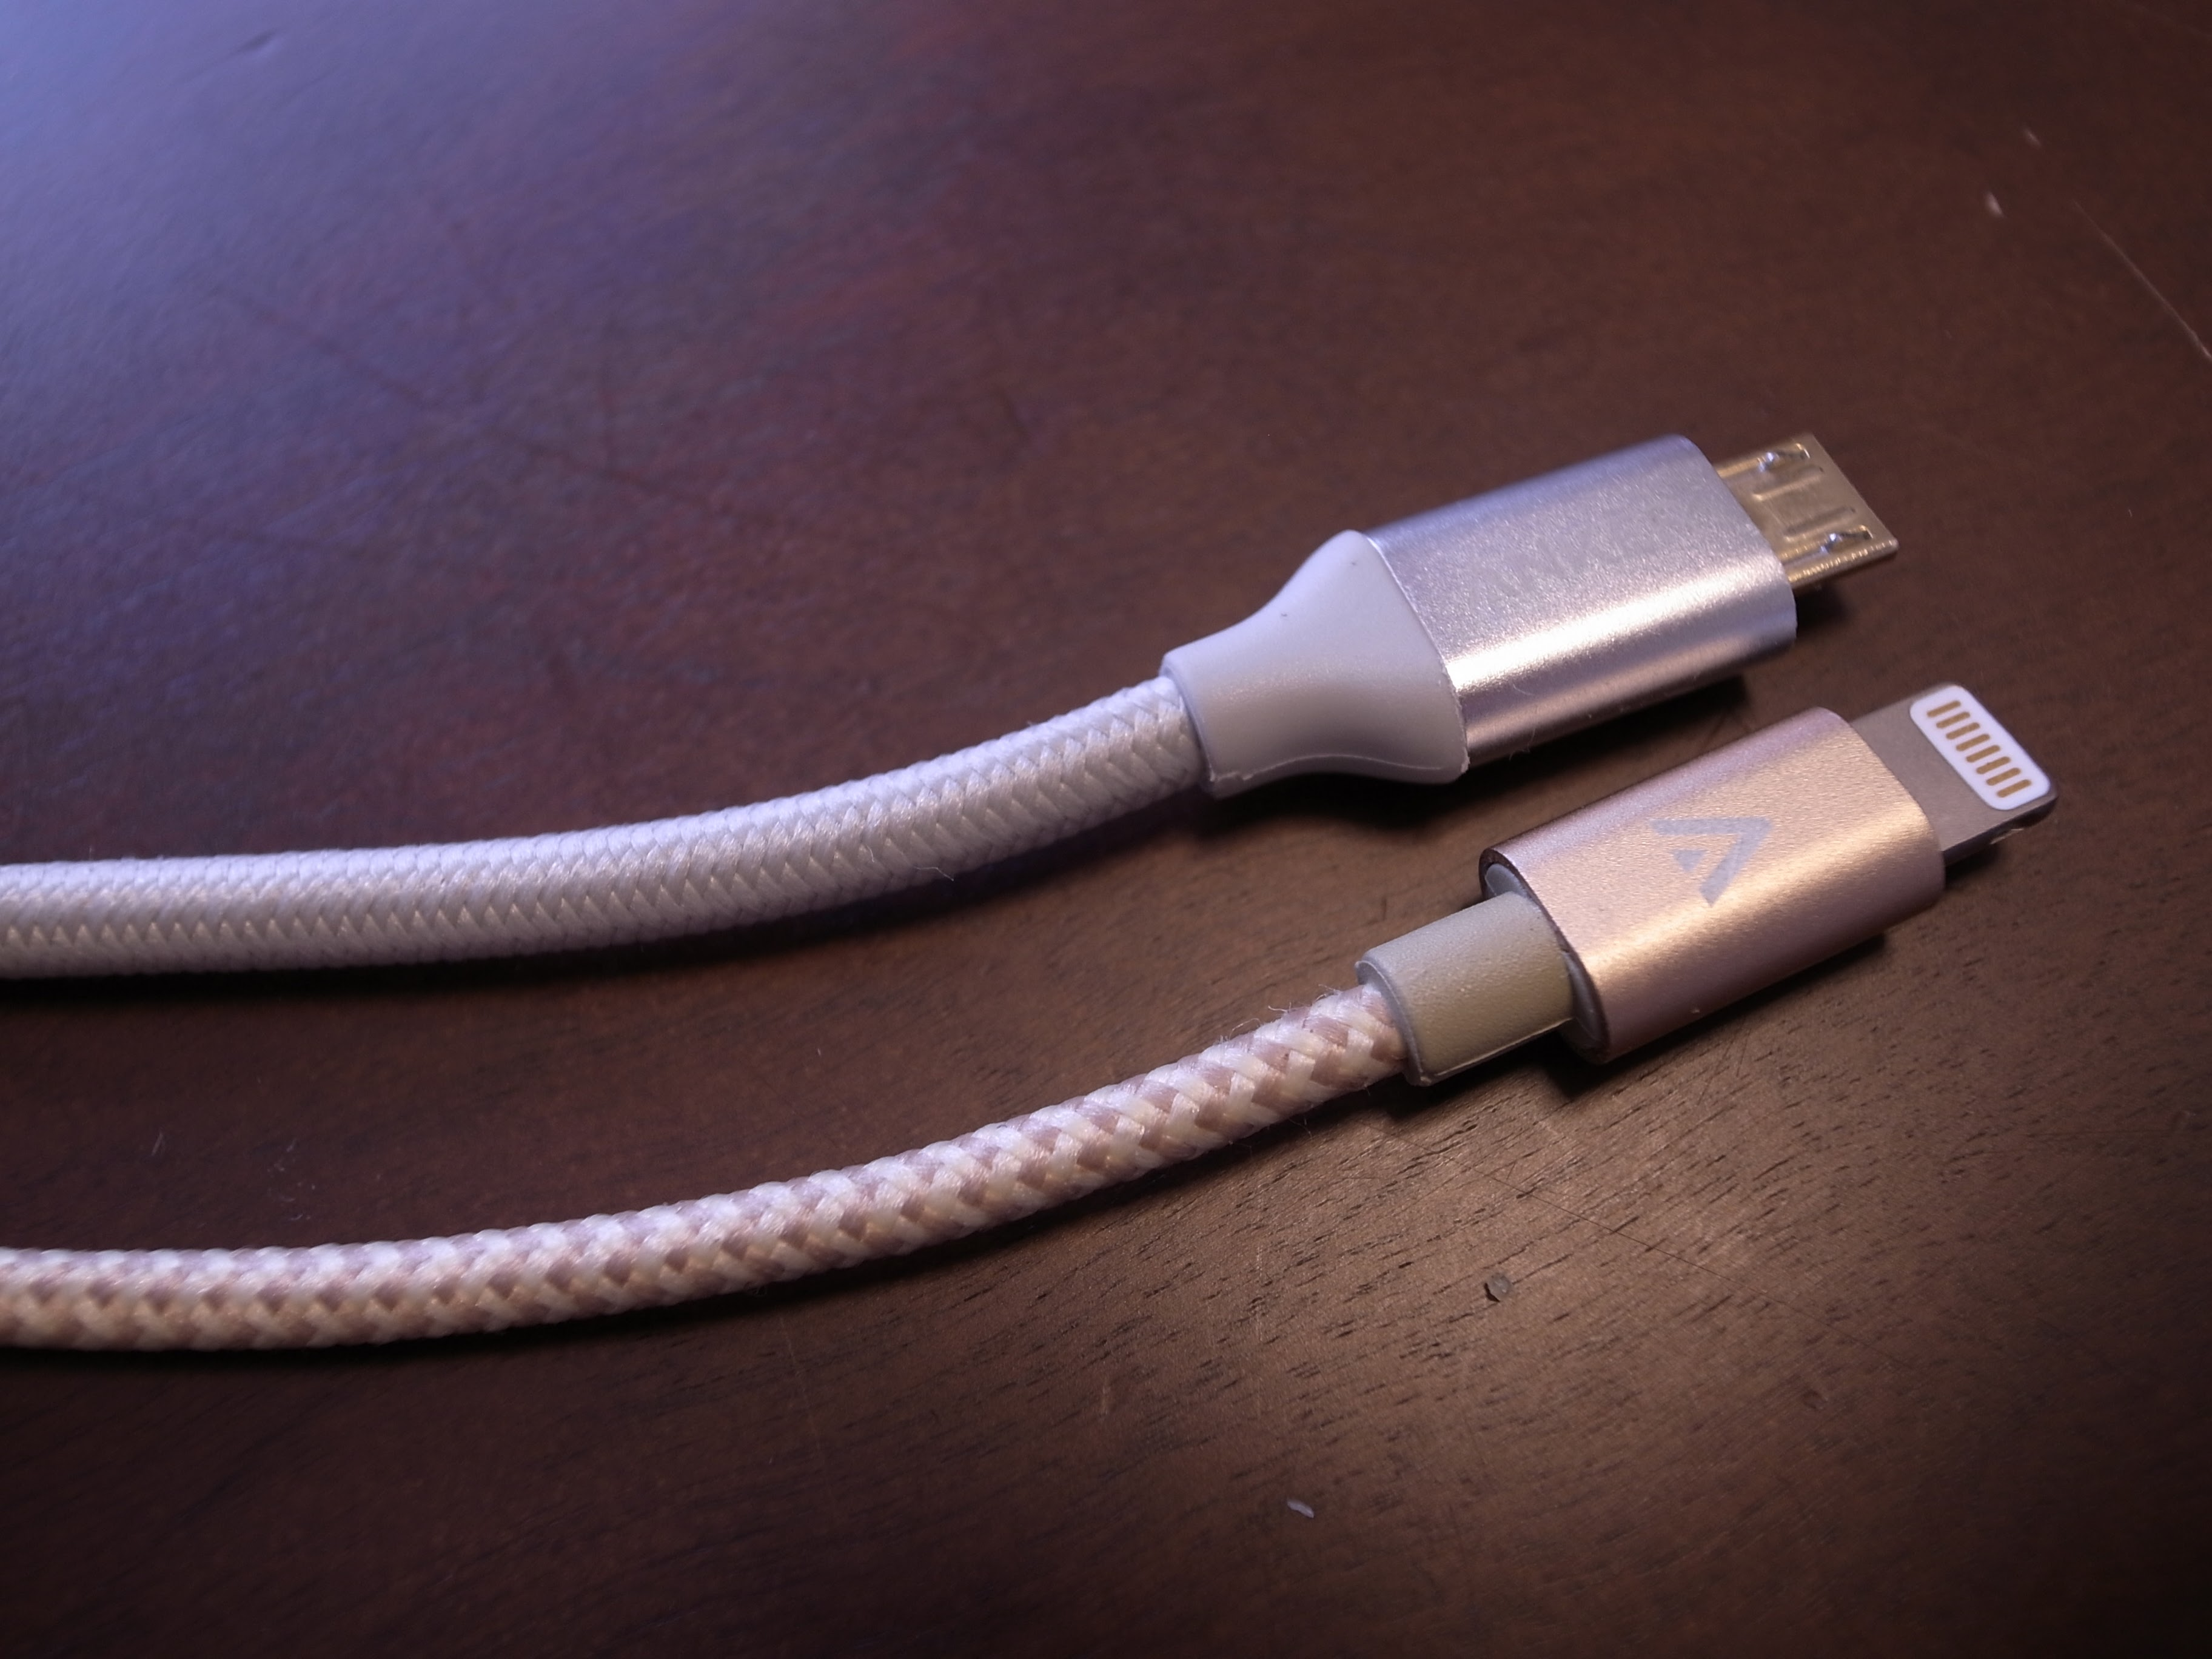 0819-201506_Anker Lightning Cable 05